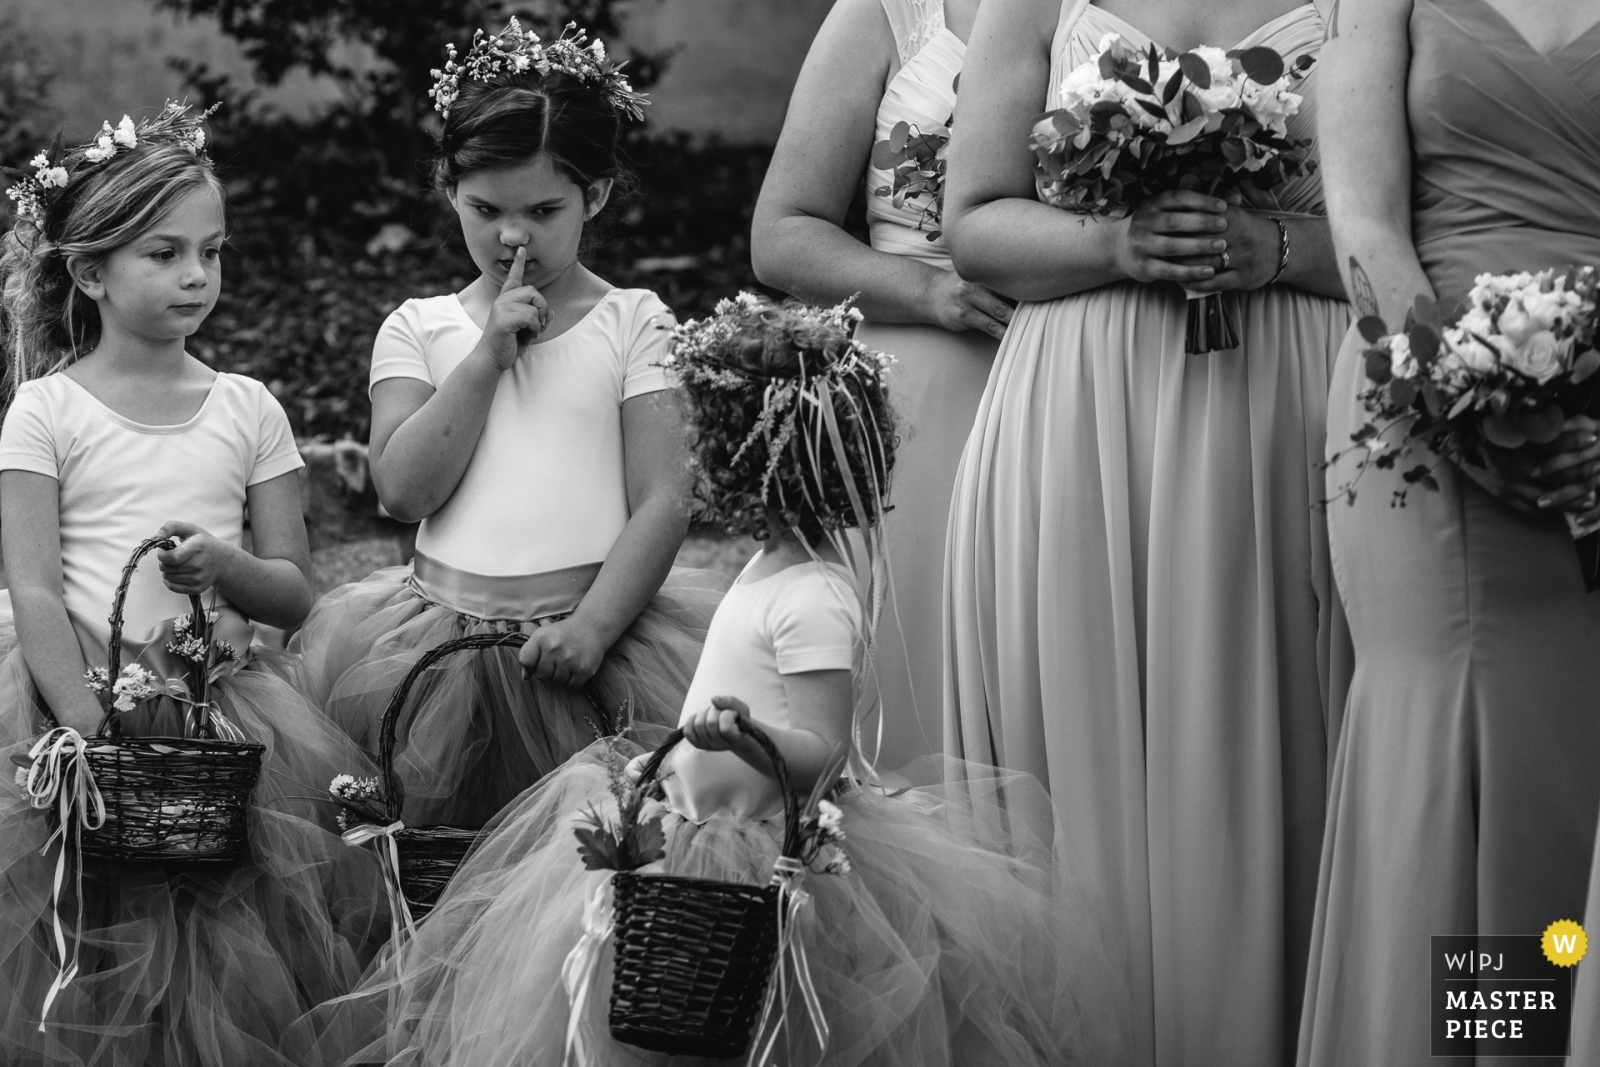 One flower girl shushes another during the ceremony. - Lake Tahoe, California - Northern Wedding Photography -    Haue Valley: Pacific, Missouri